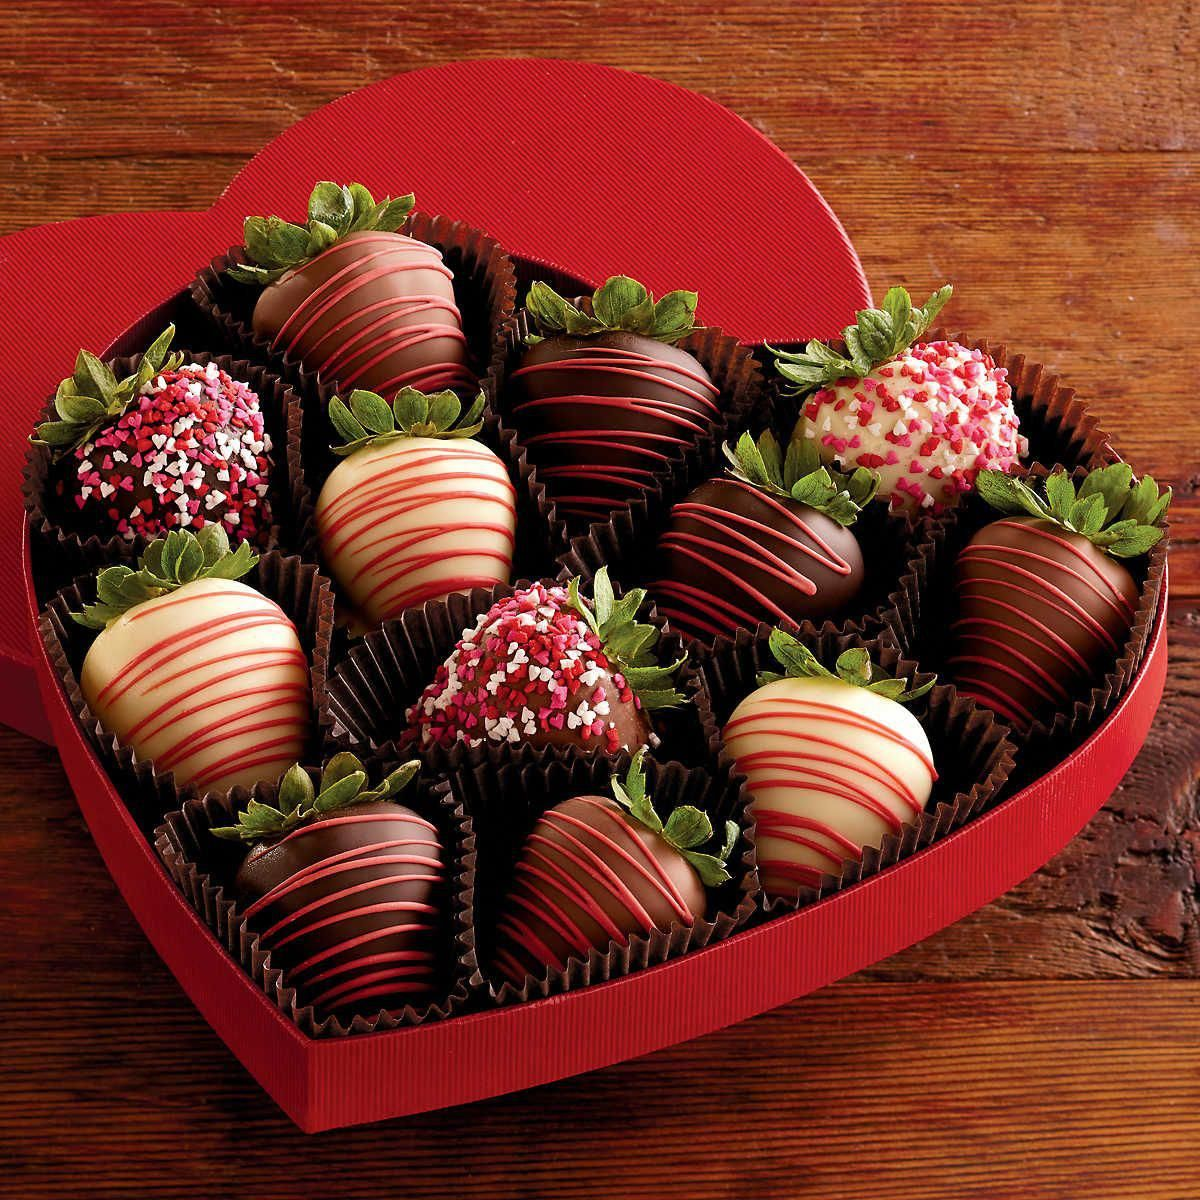 Pin On Chocolate Covered Strawberries Recipes